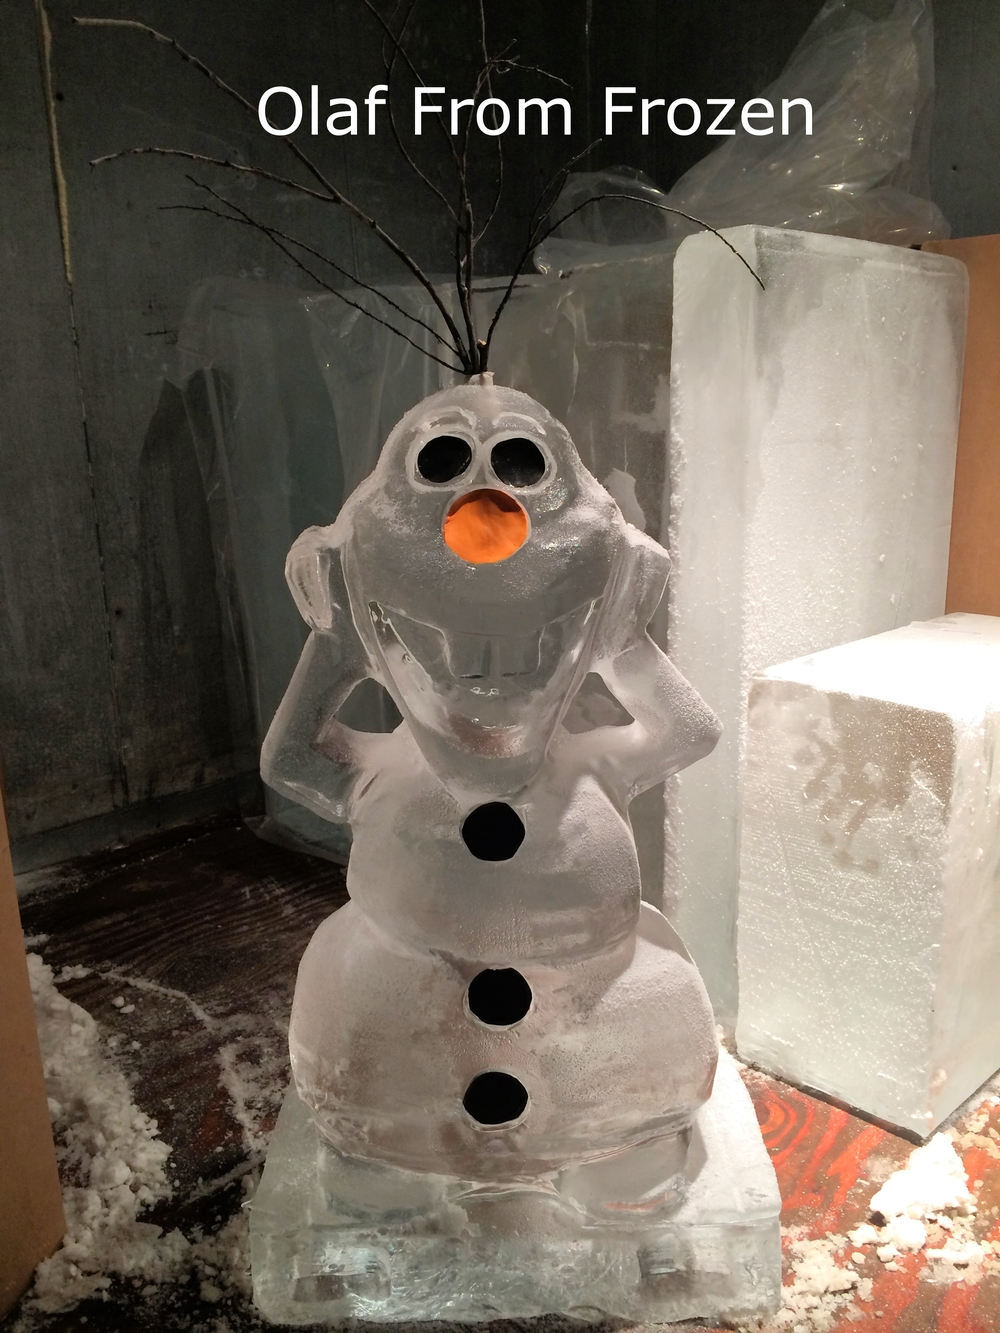 Olaf from Frozen.jpg